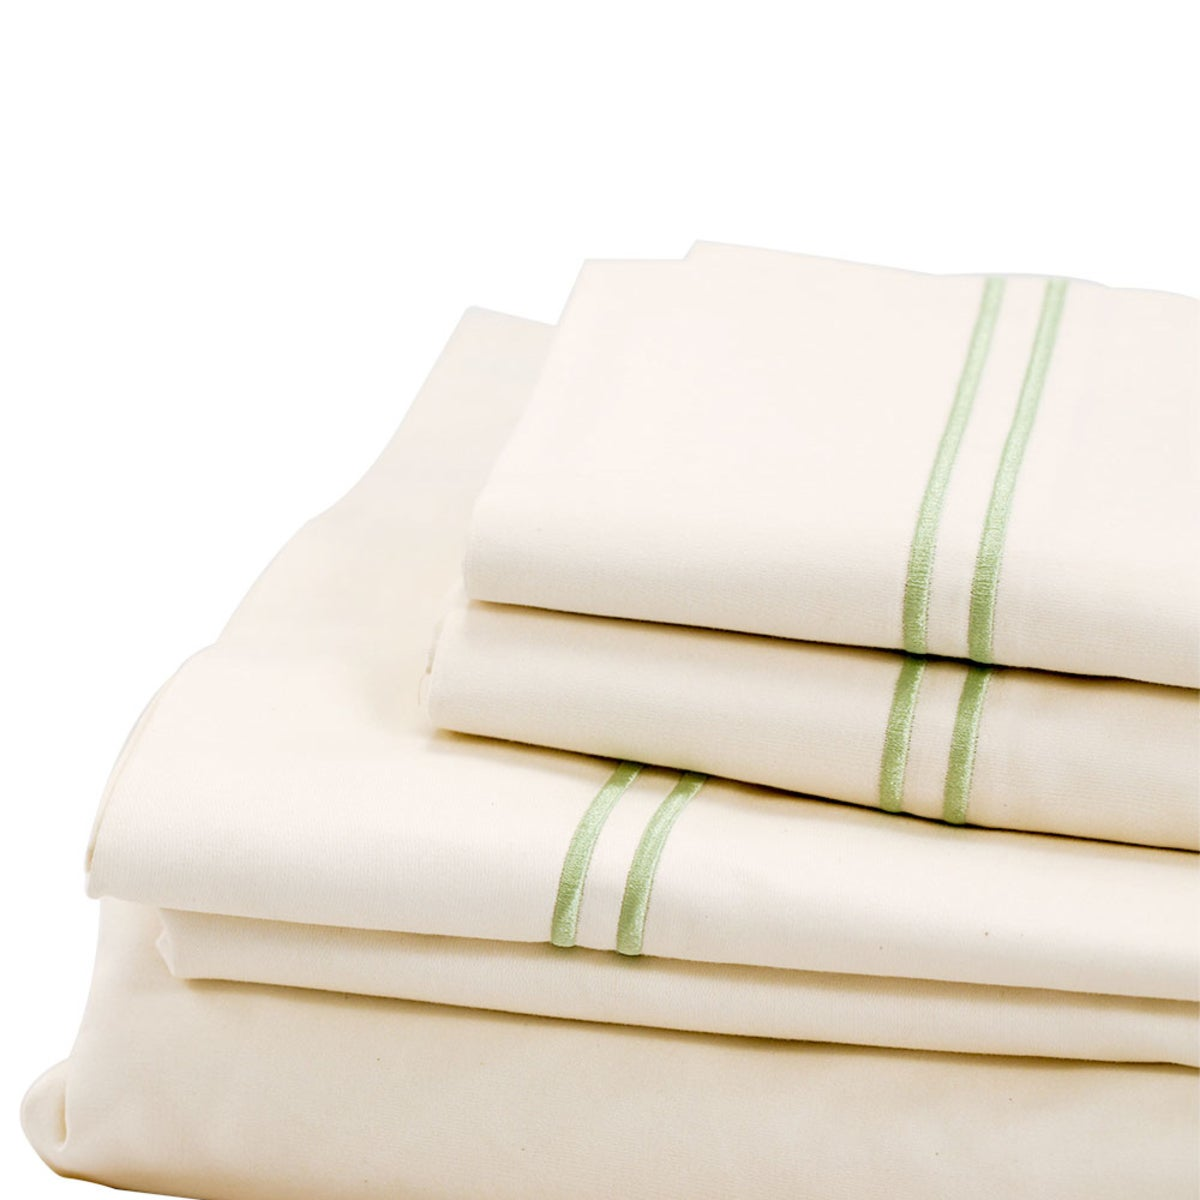 500 Thread Count Sateen Satin Stitch King Sheet Set - Ivory, Aloe